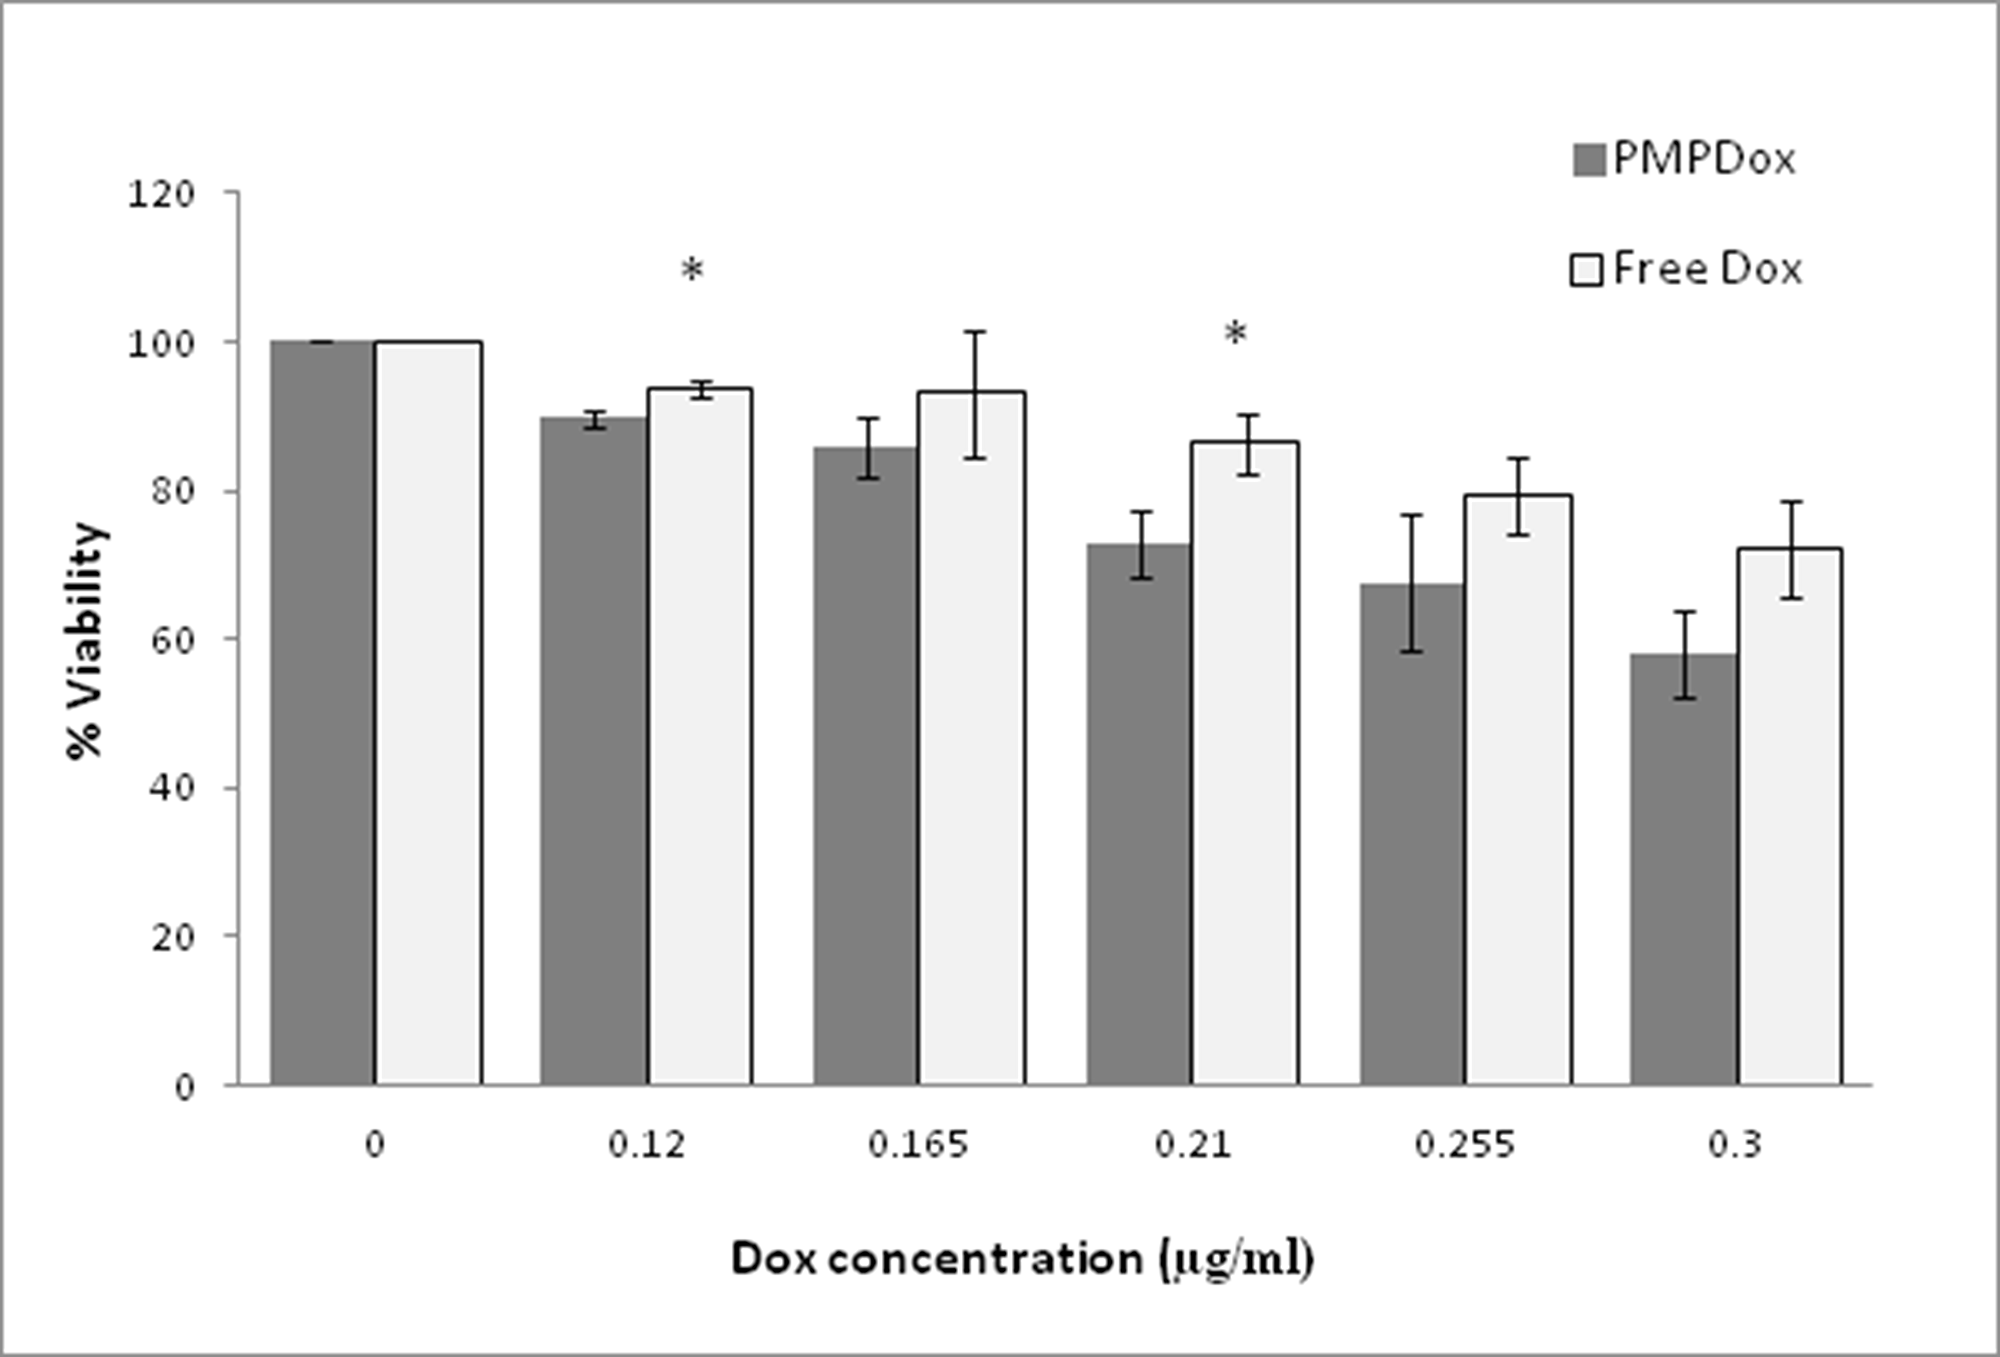 Toxicity of Doxorubicin loaded PMPs (PMPDox) and free Doxorubicin on HL 60 cells studied by MTT assay.